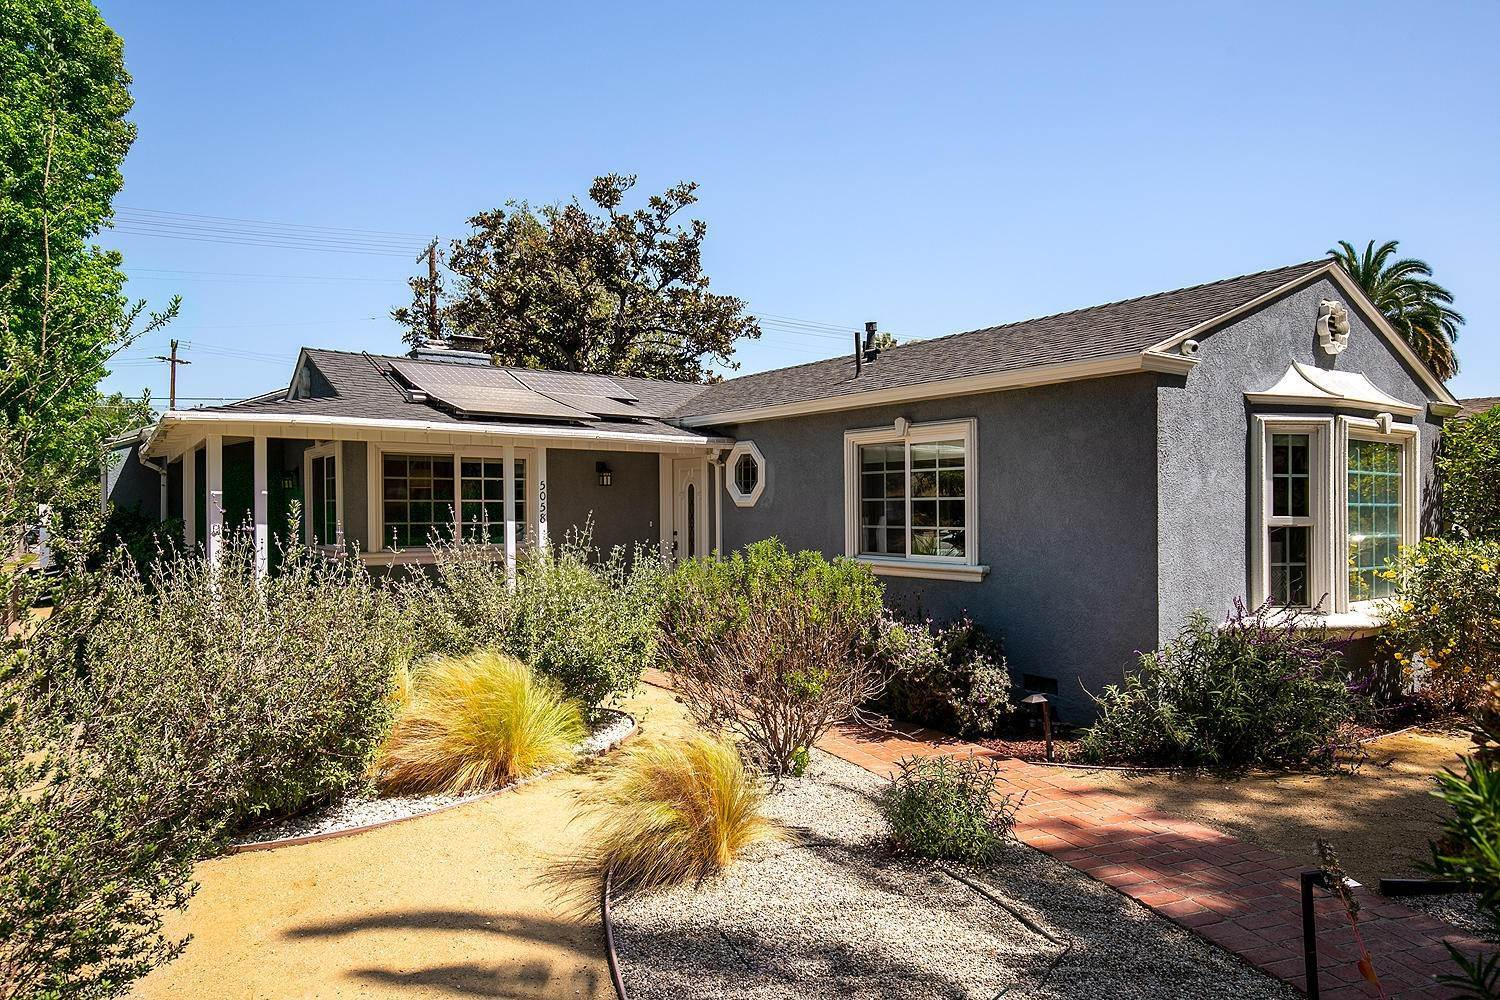 3. Single Family Homes for Sale at 5058 Willowcrest Avenue North Hollywood, California 91601 United States